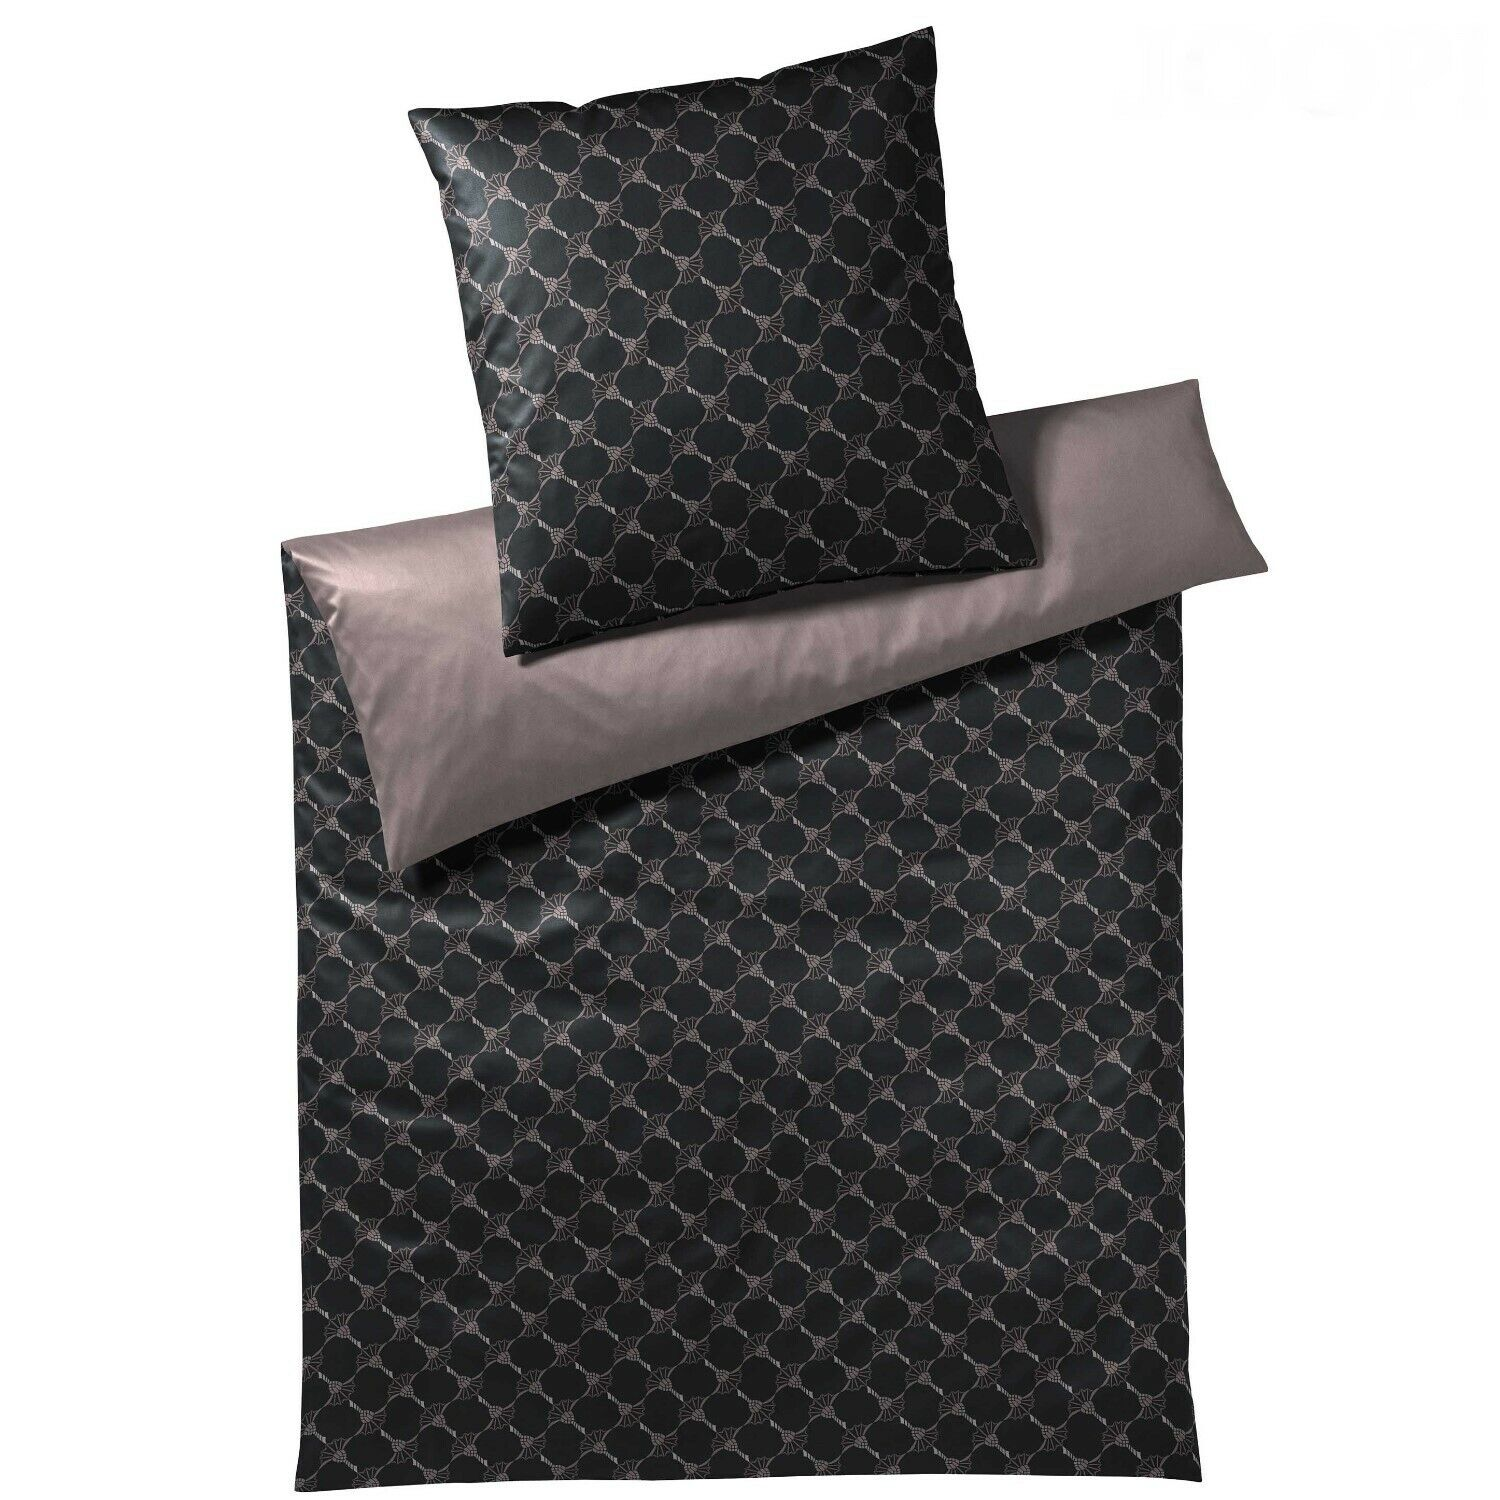 Bettwäsche Dog Side My Side Joop Bettwäsche 4050 Plaza Plain Honan Col.1 Cassis 135x200 %sale% Statt 139€